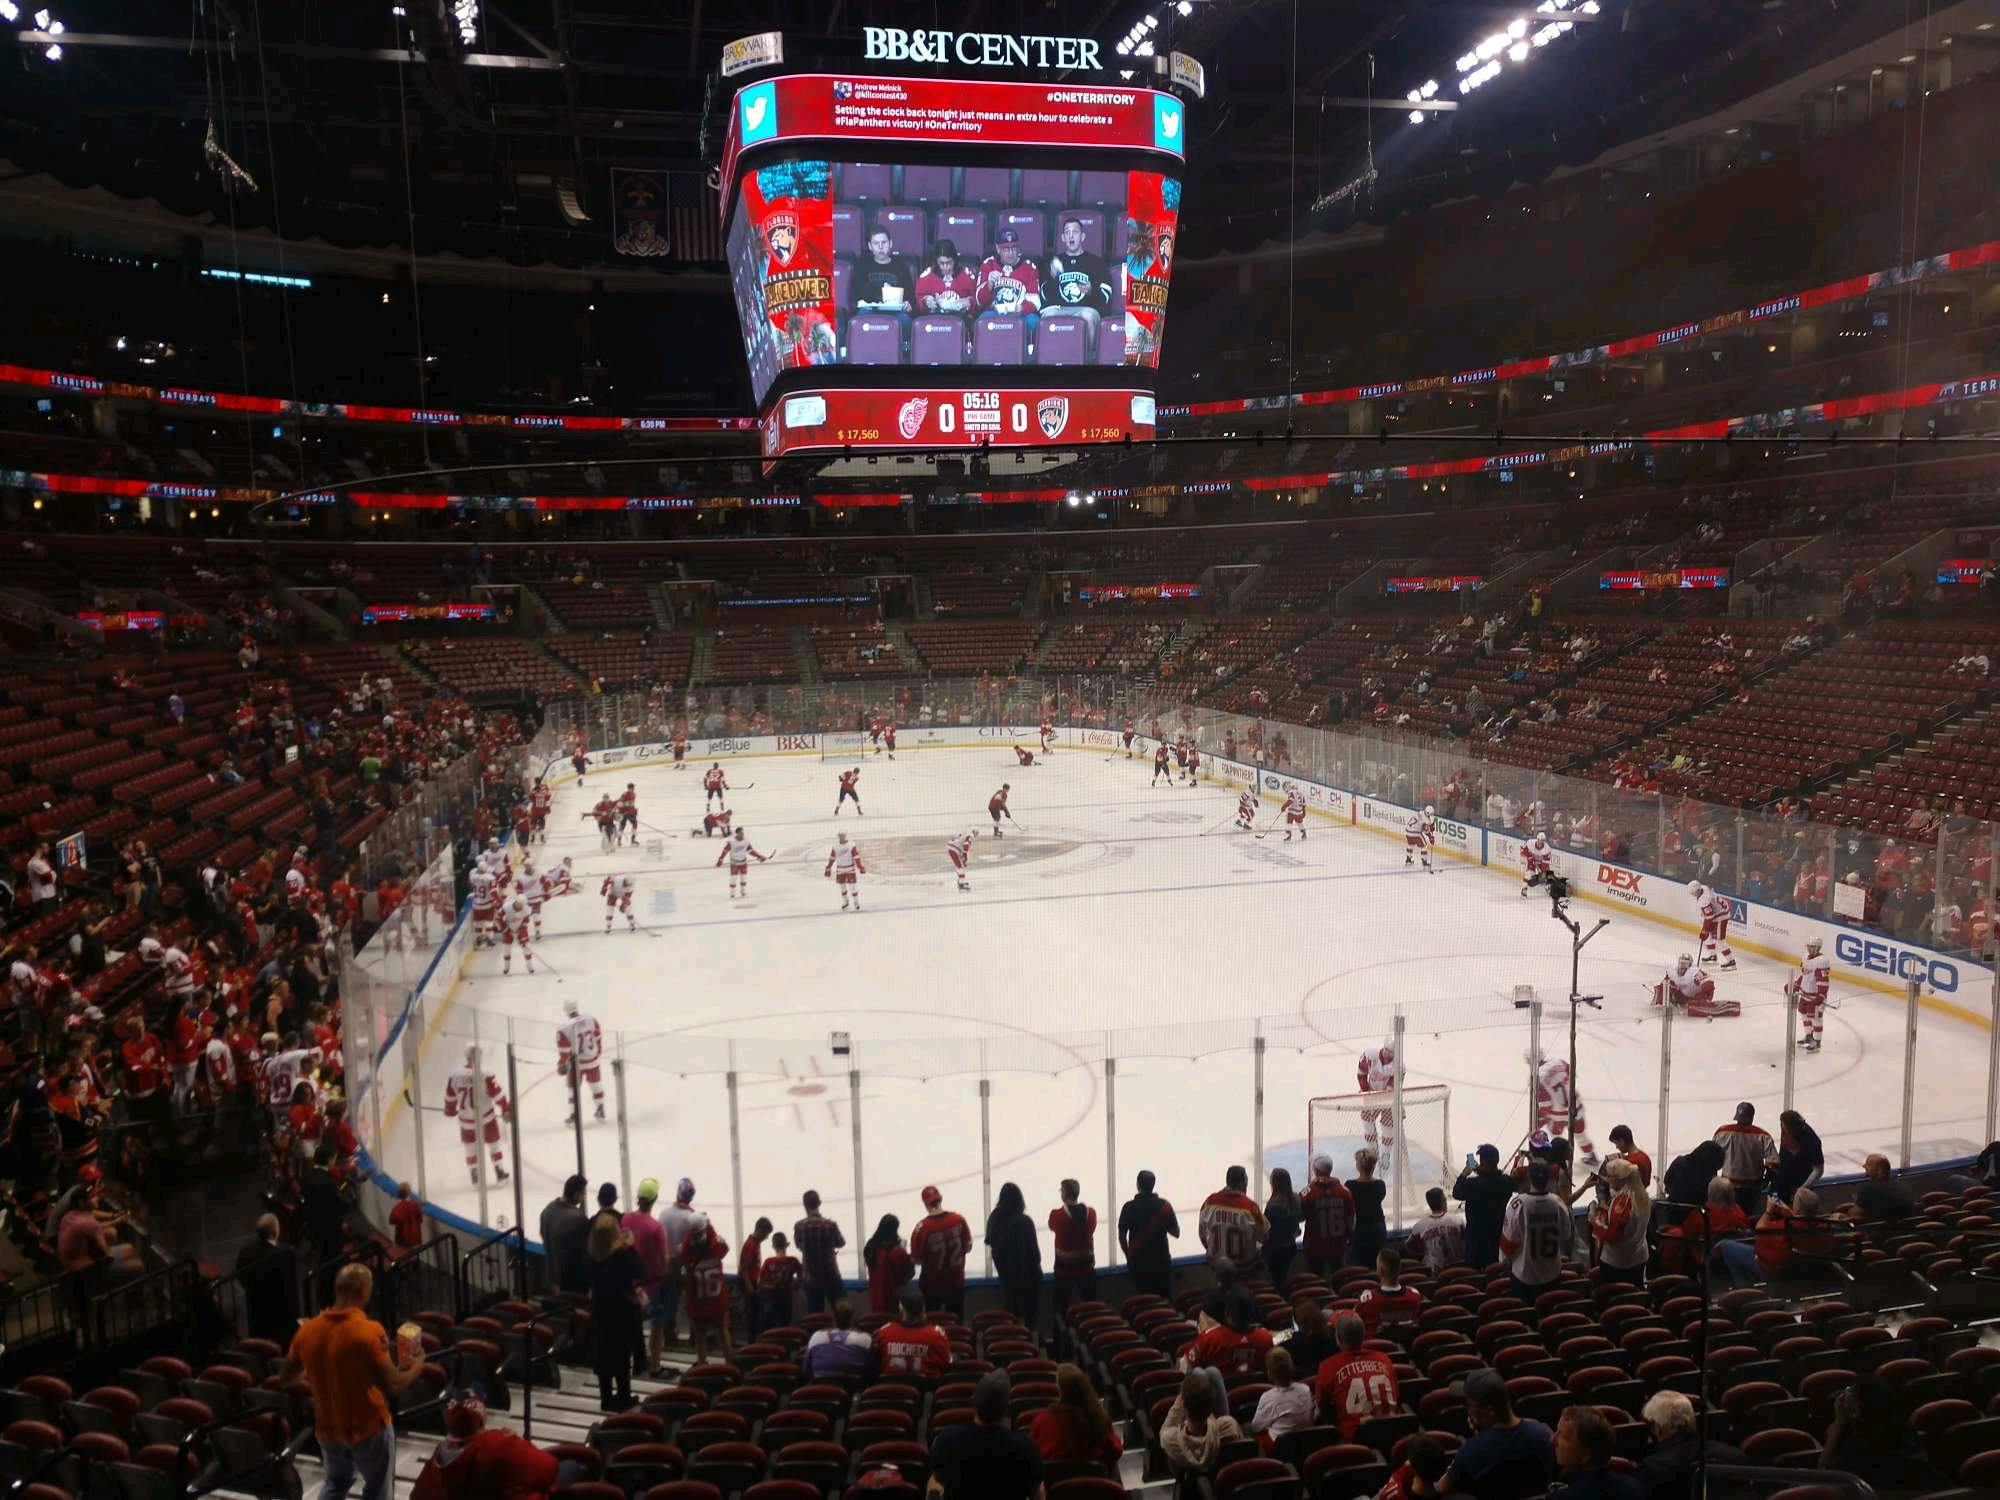 BB&T Center Section 128 Row 17 Seat 7